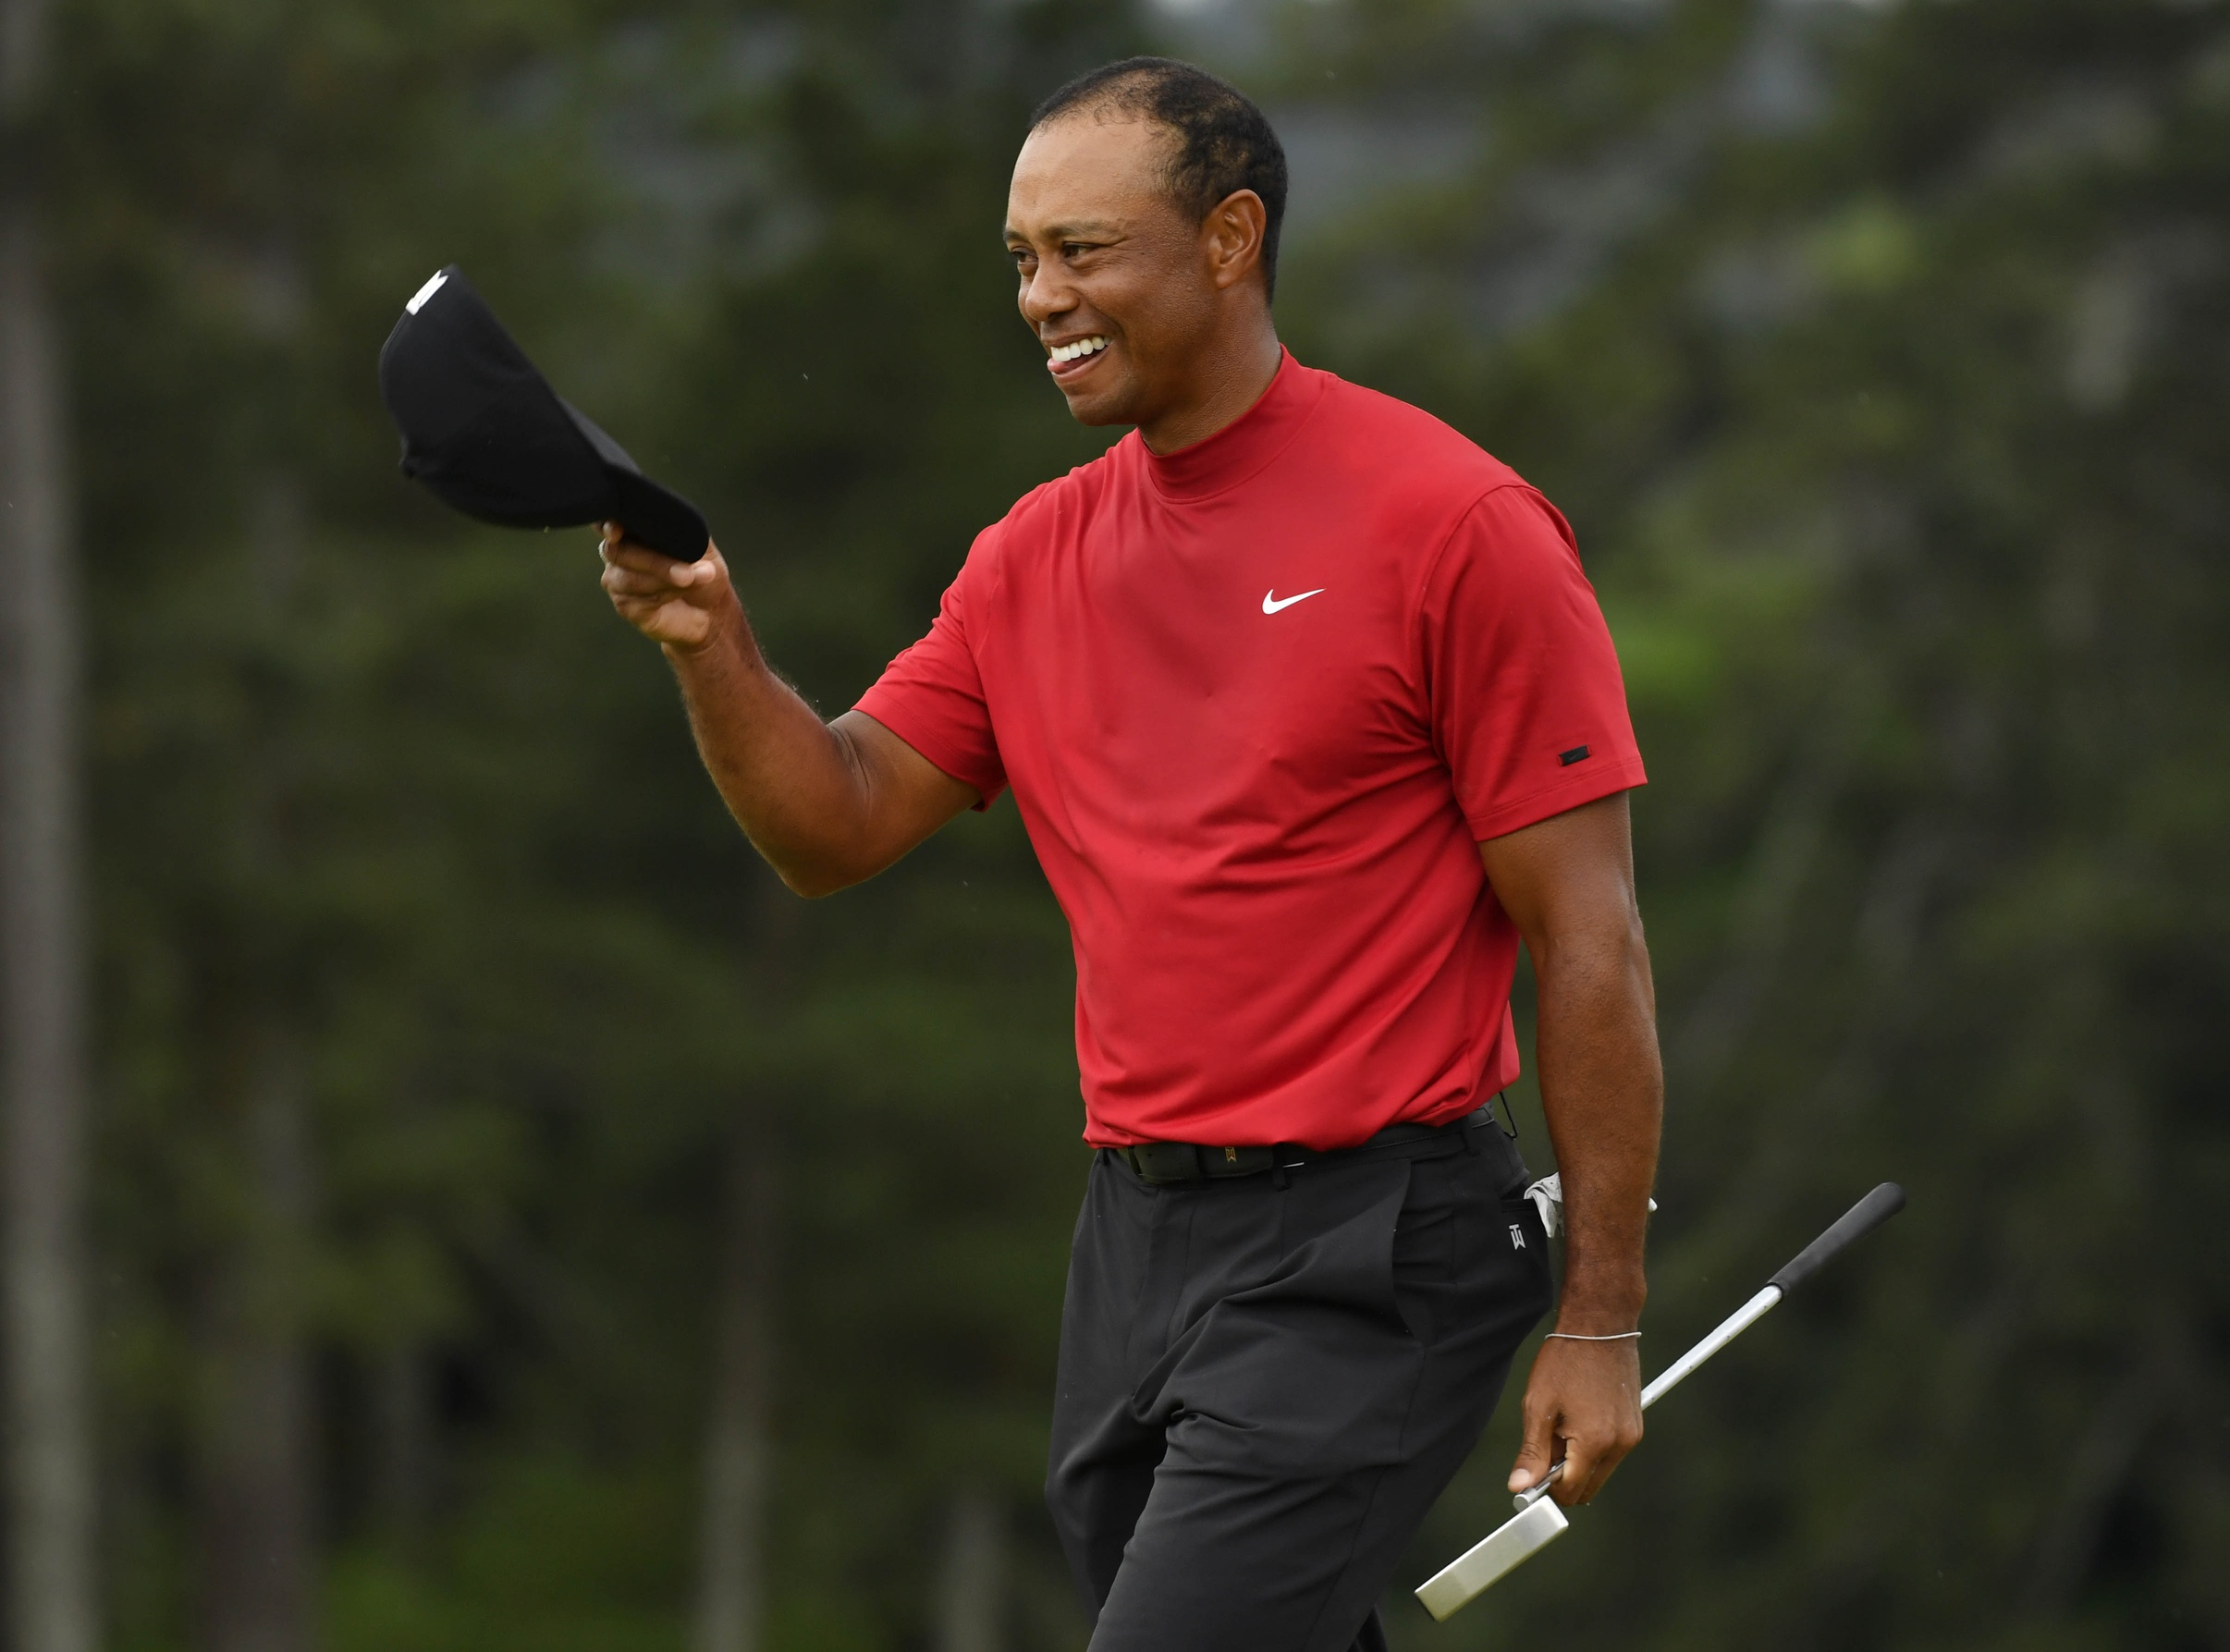 Man Who Cashed In On Tiger's Masters Win is Betting it All